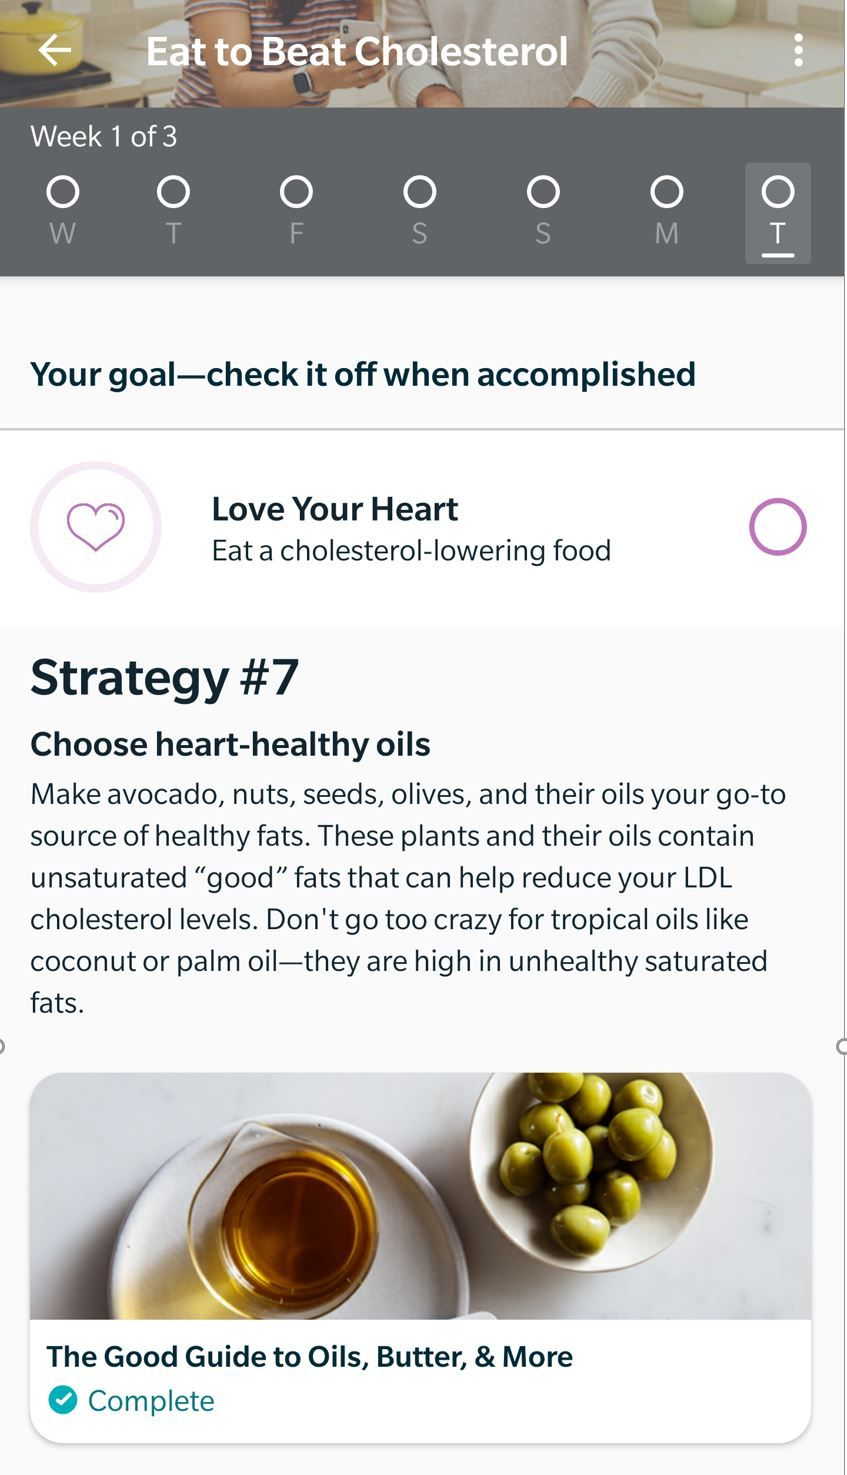 fitbit-eat-to-beat-cholesterol